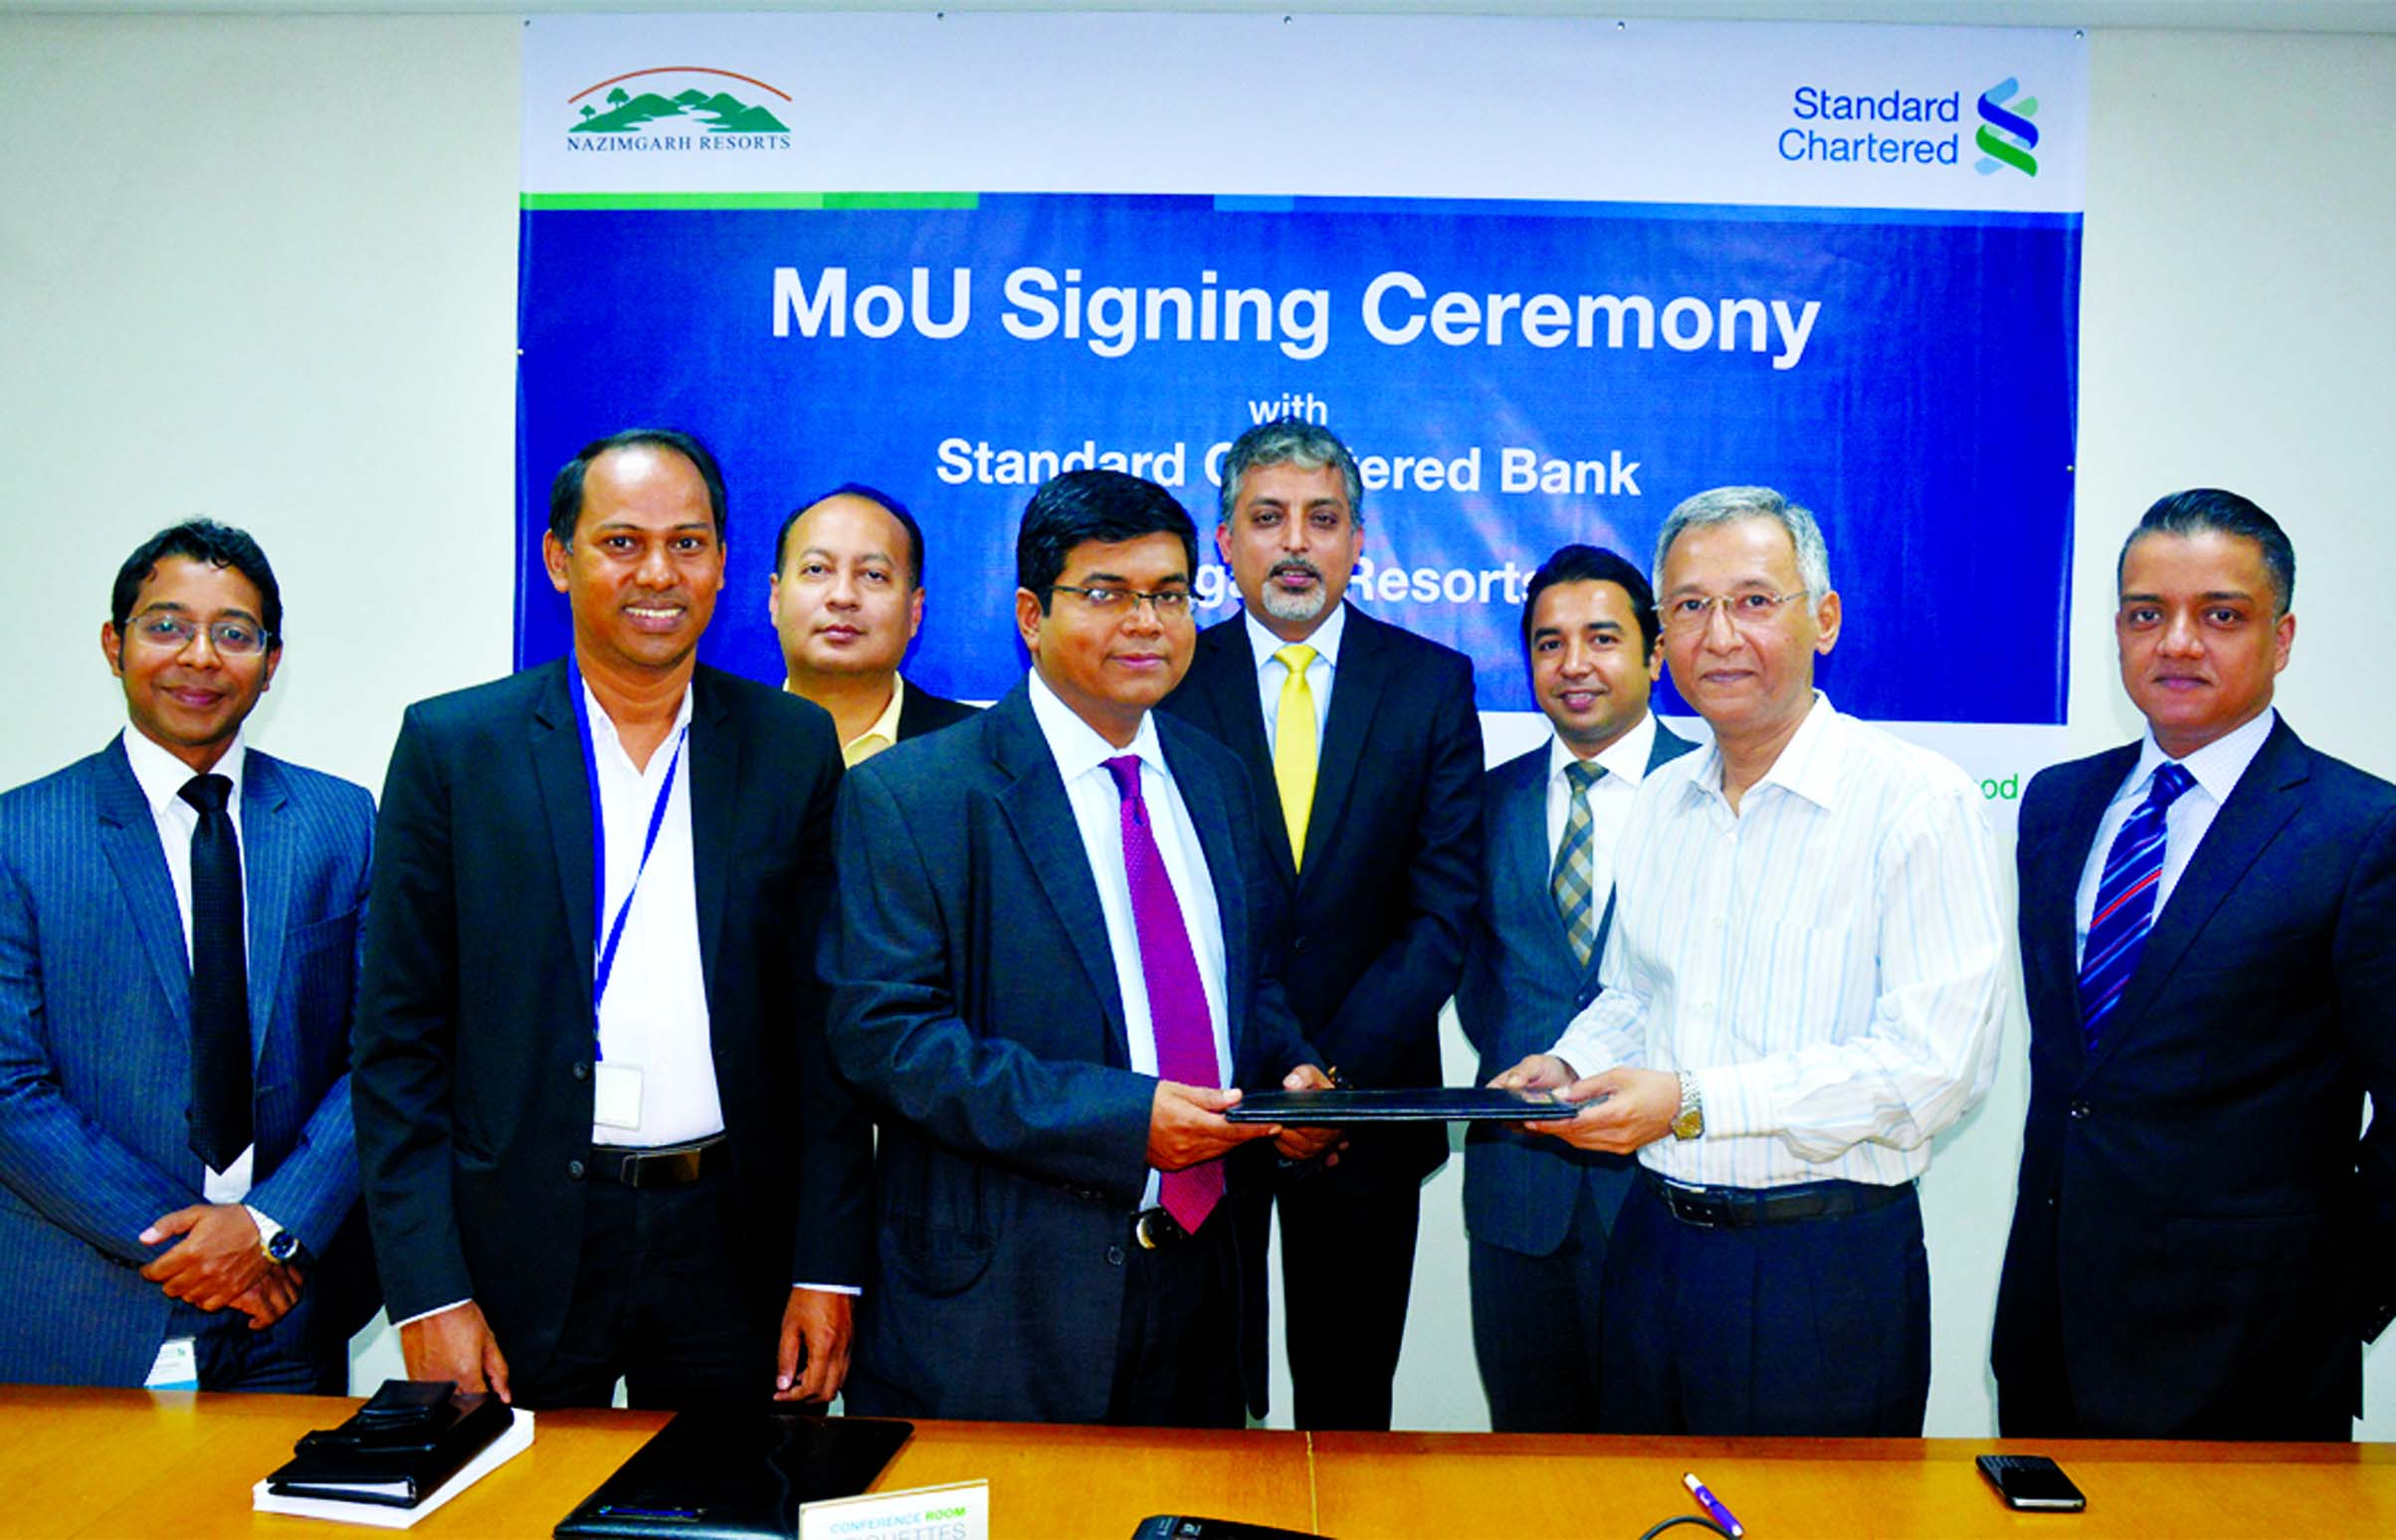 Makam E Mahmud Billah, Head of Retail Products of Standard Chartered Bank and Nazim Shafkat Choudhury, Director of Nazimgarh Resorts in Sylhet exchanging a MoU signing documents in the city recently. Under the deal, the resorts will provide a range of exclusive benefits to Credit and Debit Cardholders of the bank upto 35percent discount on published room rates. Md Mahiul Islam, Head of Brand and Marketing of the bank and other senior officials from both the organizations were present.